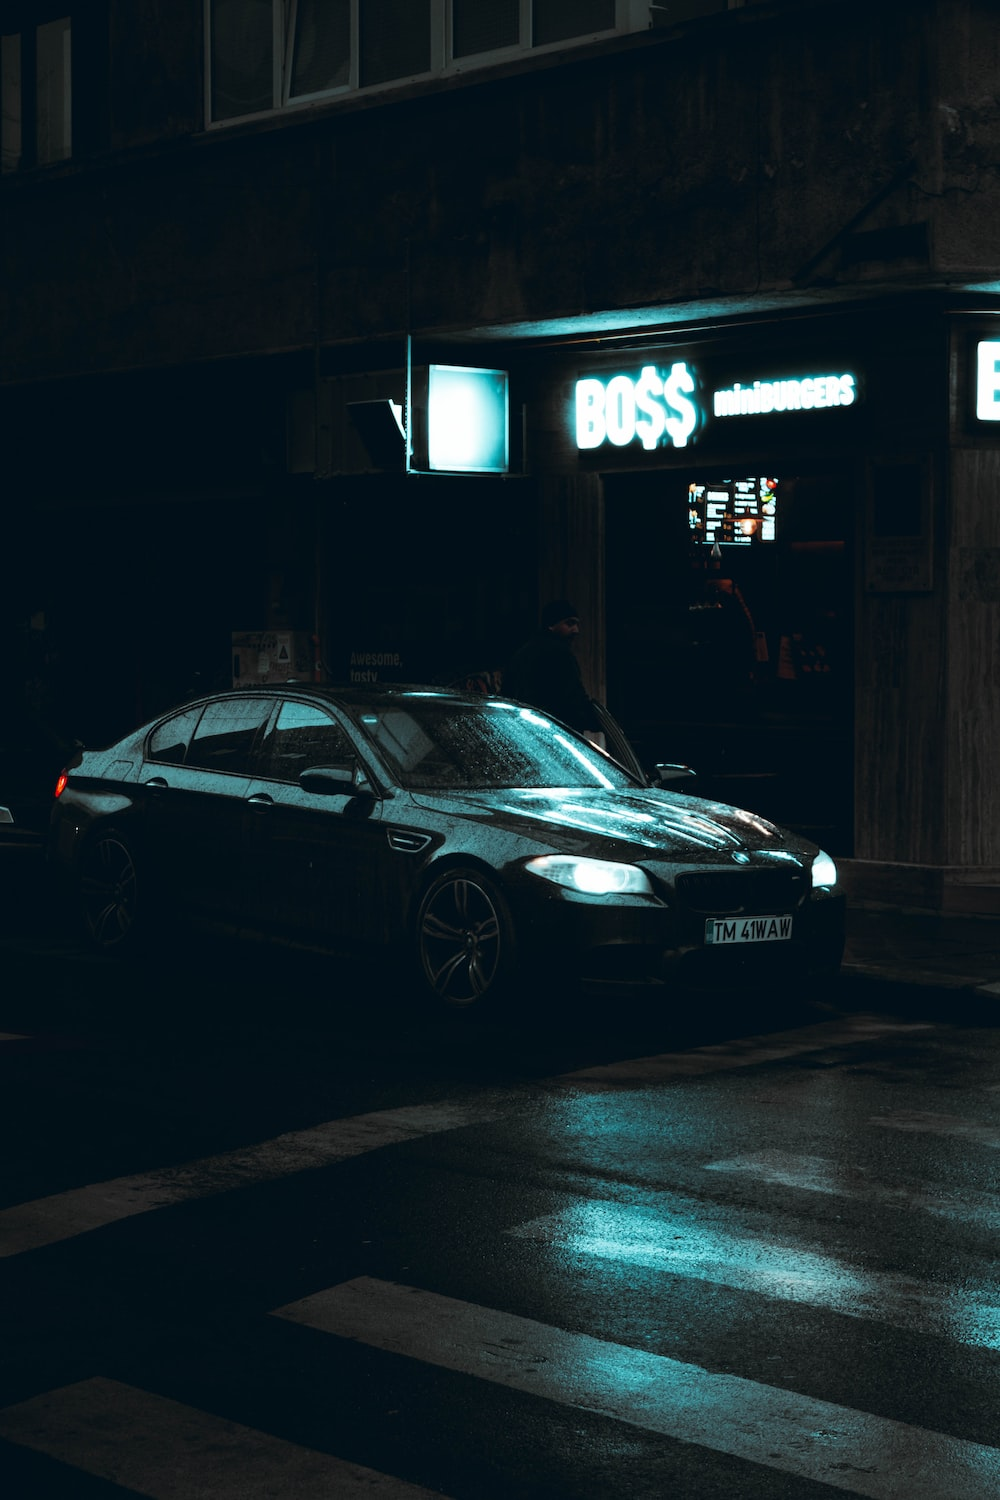 black mercedes benz coupe parked beside the building during night time